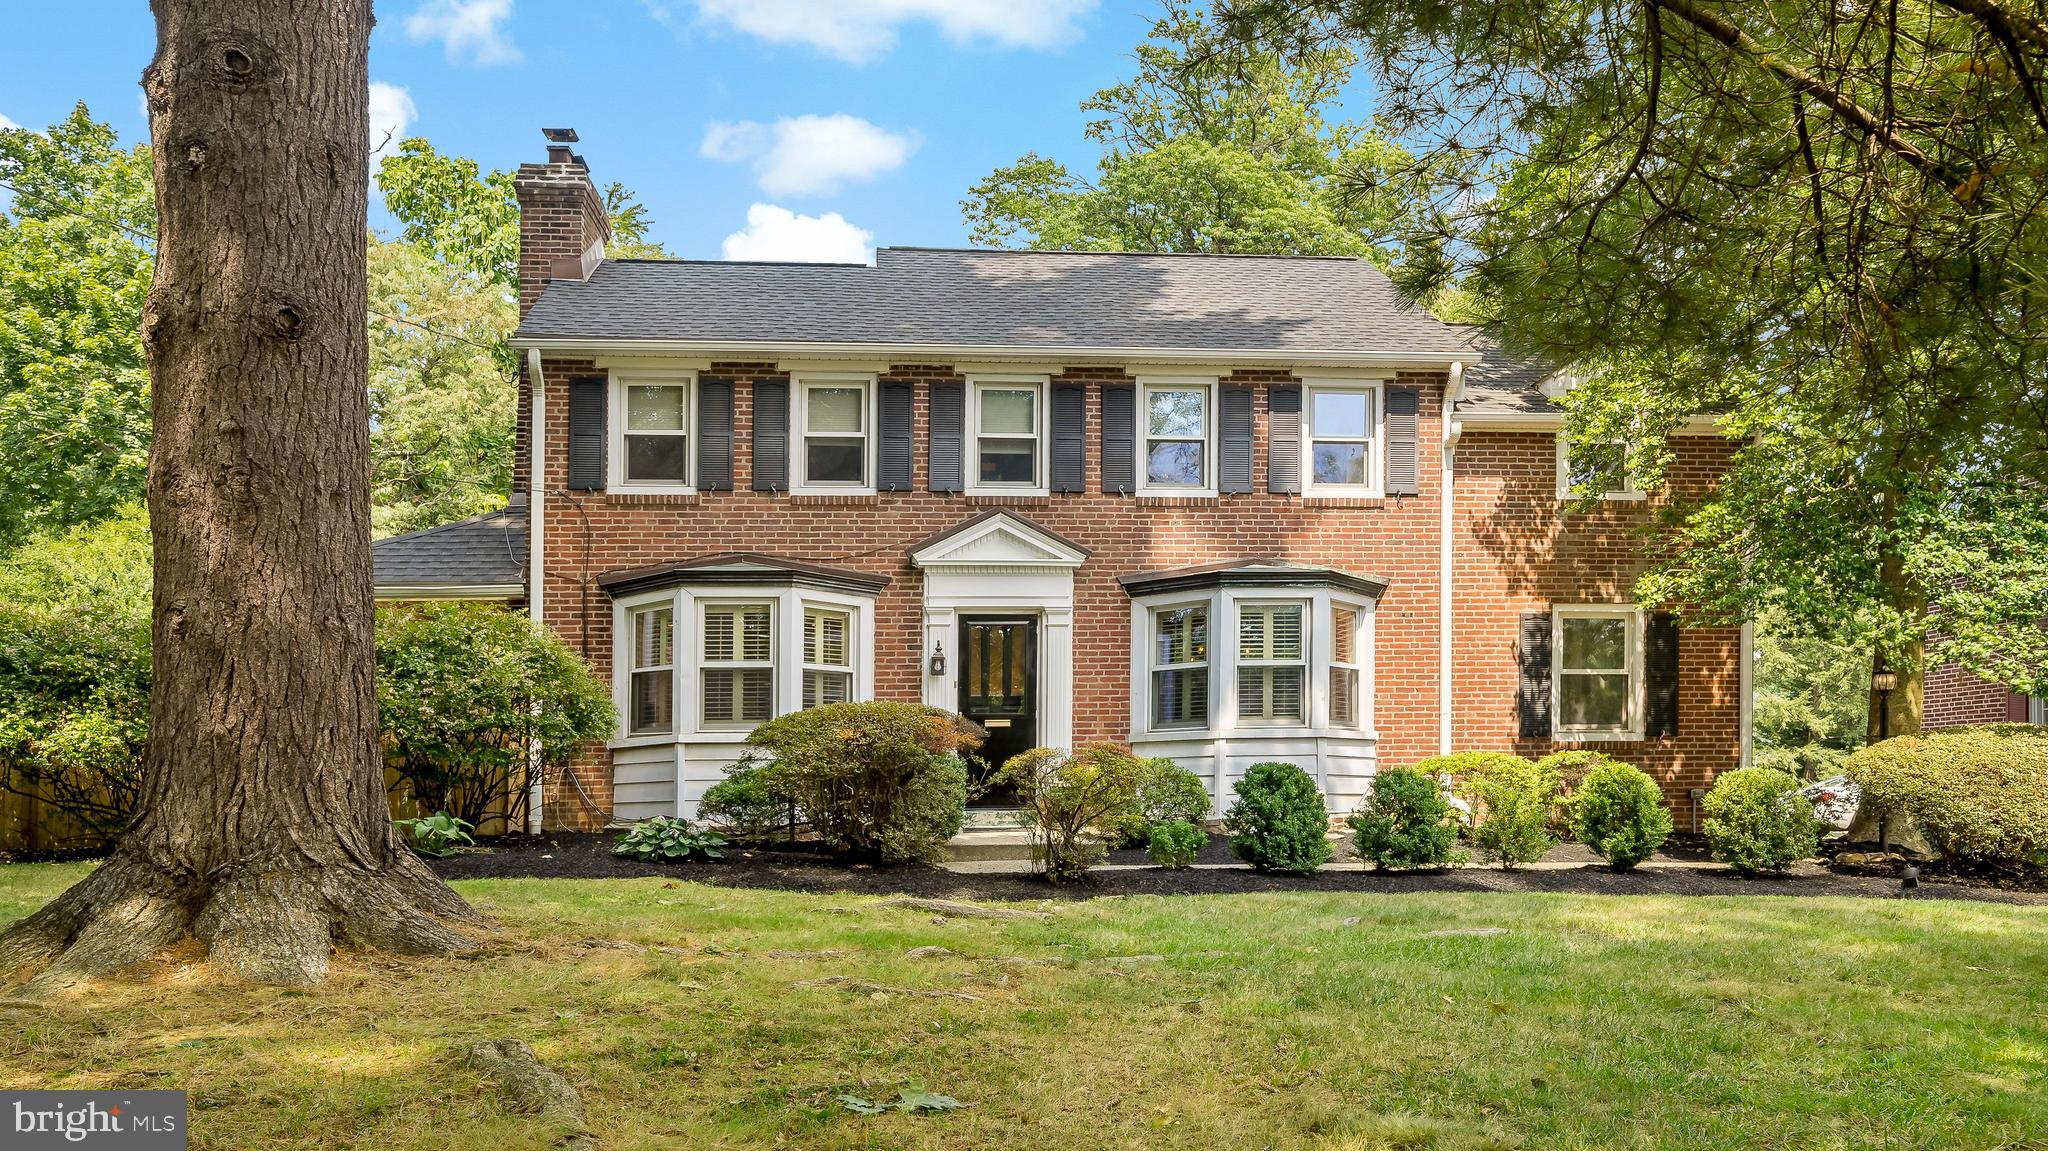 Welcome to 1045 Montgomery Ave, where you'll enjoy comfortable, elegant family living in a premier Penn Valley neighborhood. This special home offers a harmonious blend of old and new, with some wonderful preserved original features from the 1940s and many modern upgrades tailored to today's discerning buyer. The classic historic Main Line colonial sits on nearly half an acre of lush private grounds brimming with trees and shrubbery, with expansive level side and rear lawn areas for the kids and pets to play. Lounge outdoors with guests and loved ones on the covered porch and patio, perfect for coffee, cocktails, reading and conversation.   Beautiful interiors boast over 2,300 square feet of charm, light and luxury, with an additional almost 700 square feet in the newly finished lower level. The warm, gracious ambiance is enhanced by rich wood floors, tasteful millwork, crown moldings, high ceilings, and an inviting fireplace. Also setting this gem apart is the thoughtful layout and functionality of space which accommodates relaxed living and easy hosting, with a great flow from the living room to the dining room, granite/stainless steel kitchen, and family room.  Sleeping quarters are spacious and serene, highlighted by a generously-sized master suite with a private bath on the main level and a 2nd original master suite on the upper floor. Both have plenty of room to accommodate a remote office area. The primary owner's suite is king-sized and divine with a desk area, custom California closets, and French doors leading outside. With 4 bedrooms in total, there are many possibilities to meet your family's needs. And then there's the bone-dry basement, an ideal hideaway for all ages with a media/sitting area, exercise room, laundry room and bath.   Your favorite aspect however might just be the location, just a 10-minute walk to the train and a quick 20 minute ride to Center City Philadelphia. Suburban Square shopping is close by as well, as are top-rated Lower Merion